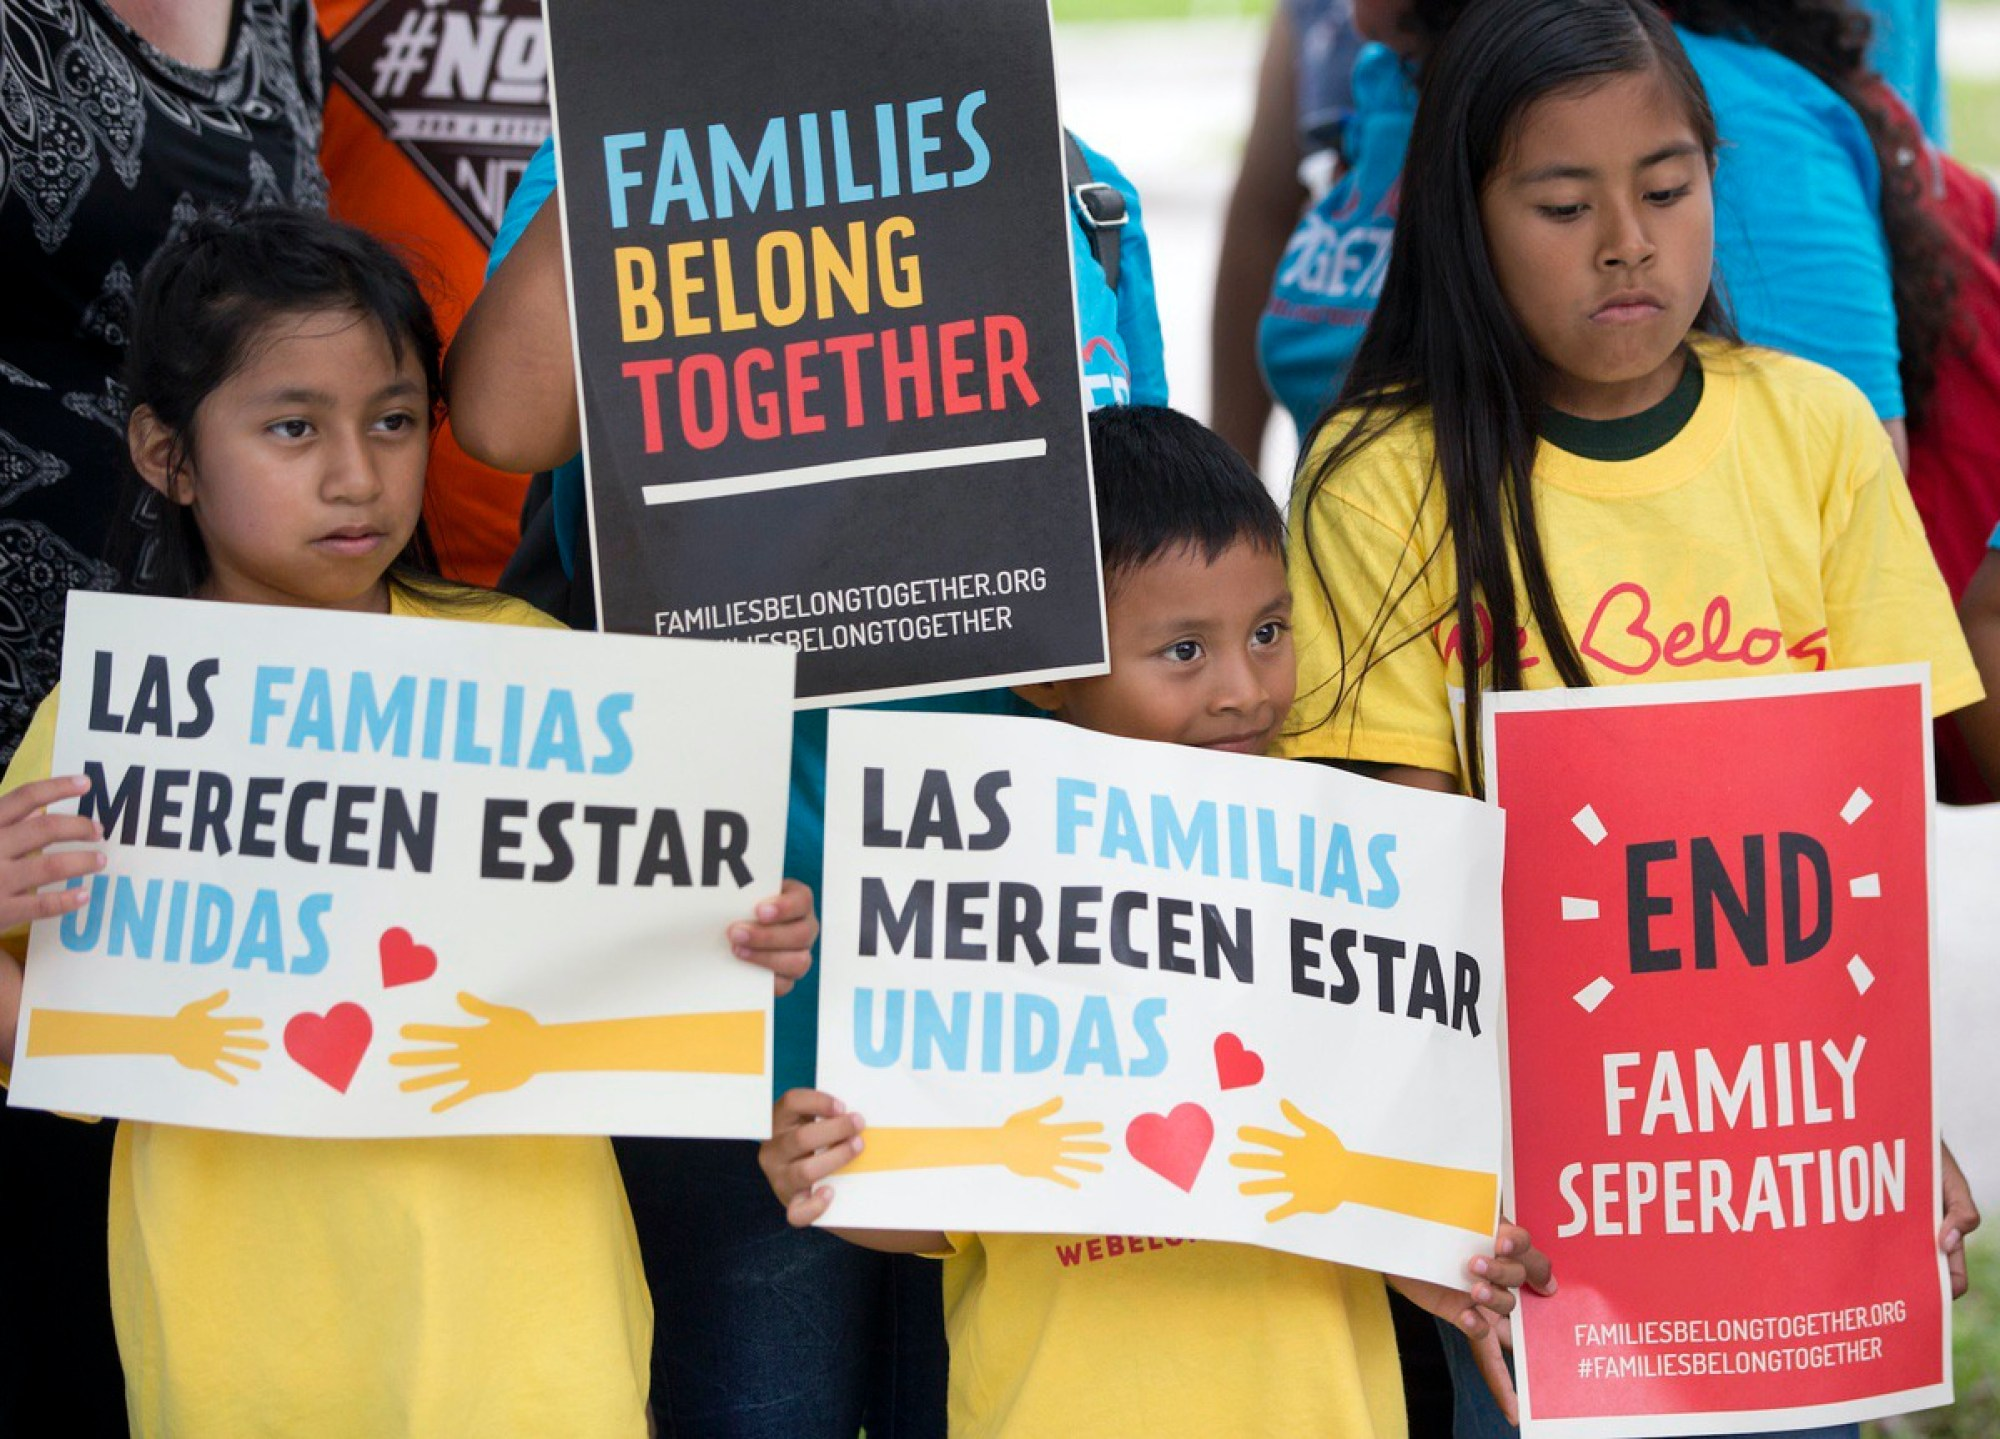 A group of children hold up signs during a demonstration in front of the Immigration and Customs Enforcement (ICE) offices, Friday, June 1, 2018, in Miramar, Fla. (AP Photo/Wilfredo Lee)